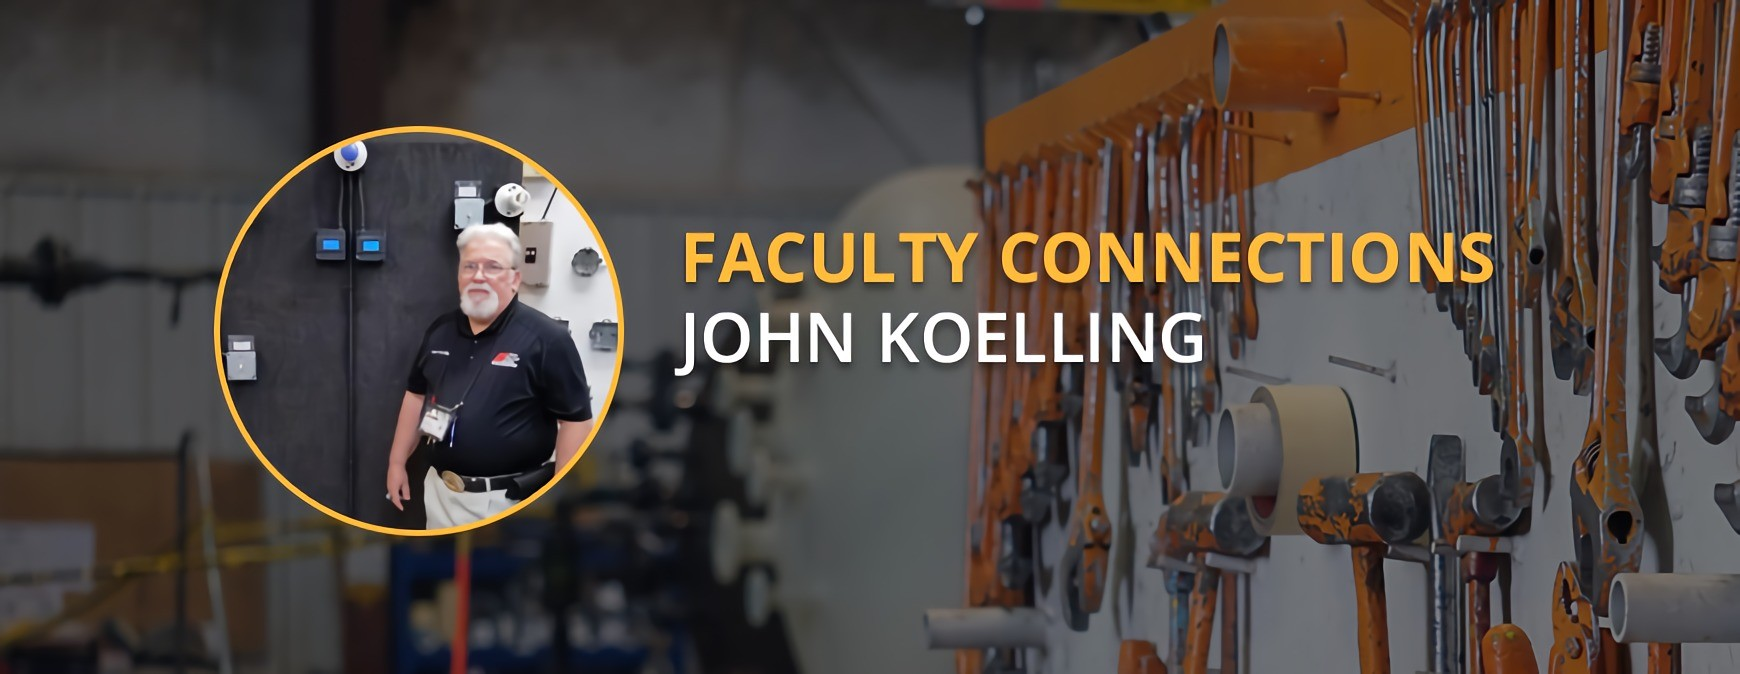 John Koelling Faculty Connections